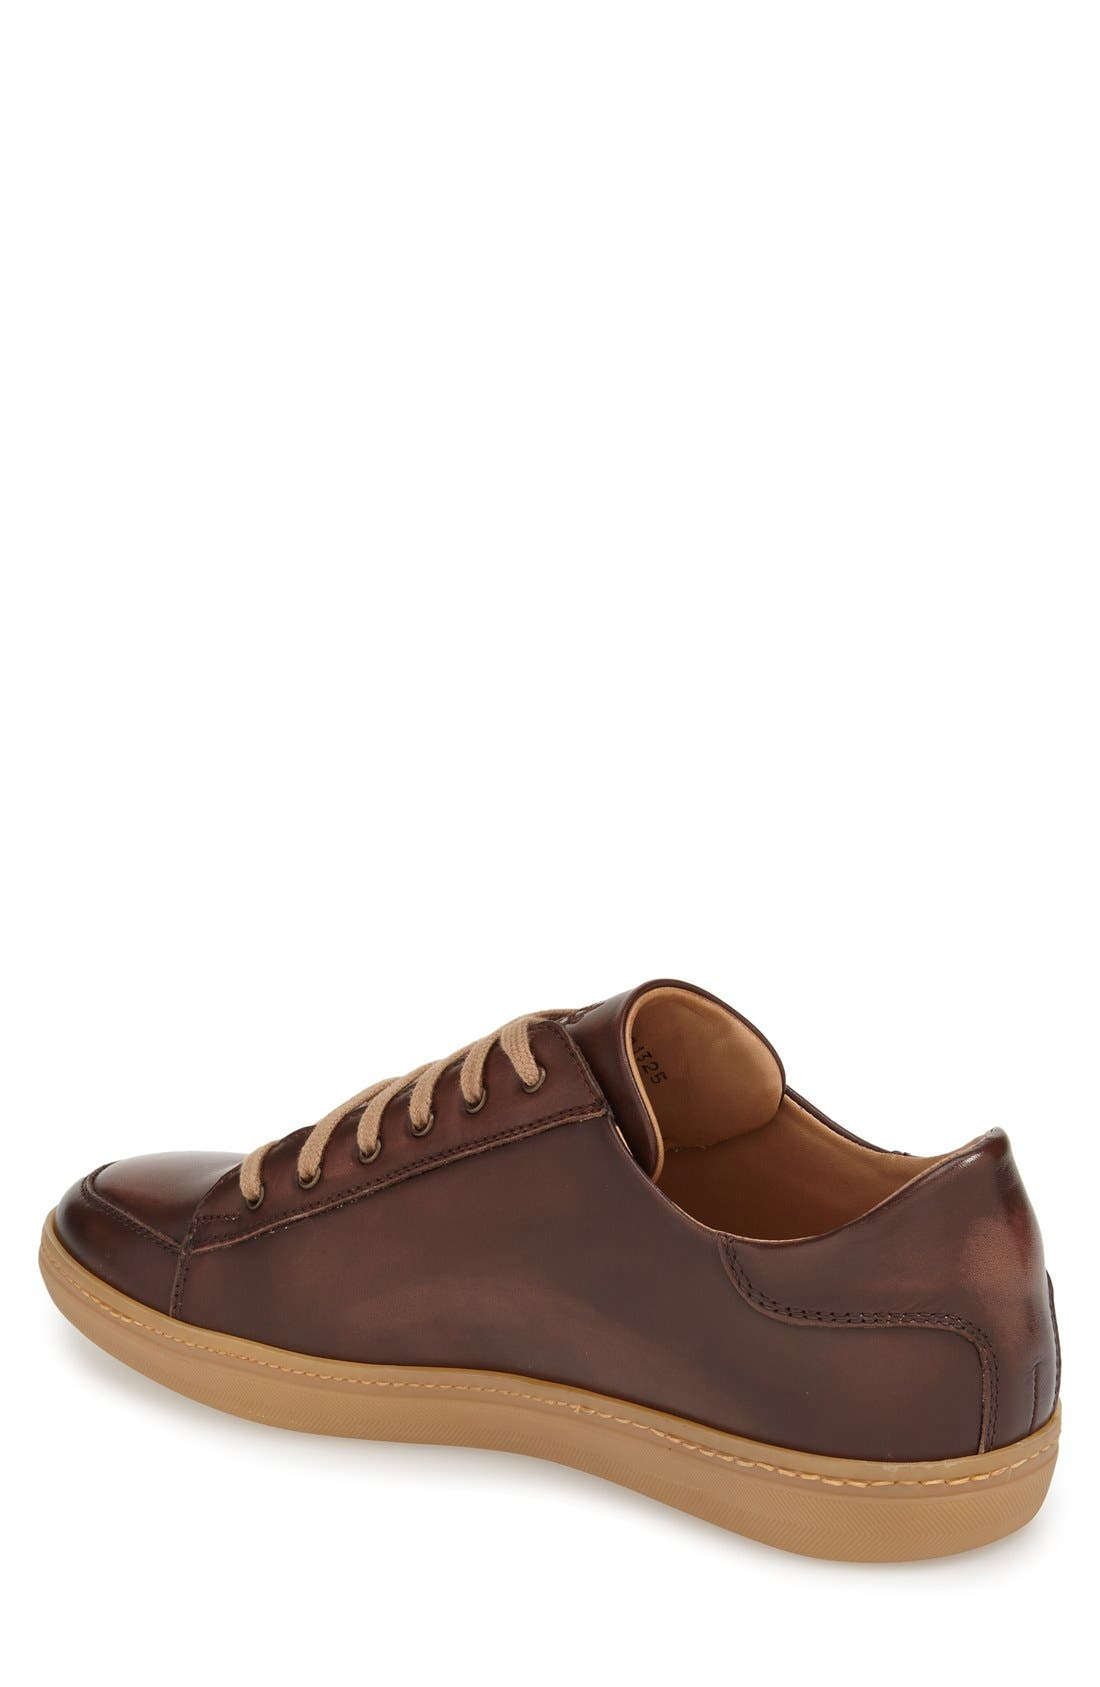 'Masi' Lace-Up Sneaker,                             Alternate thumbnail 2, color,                             BROWN